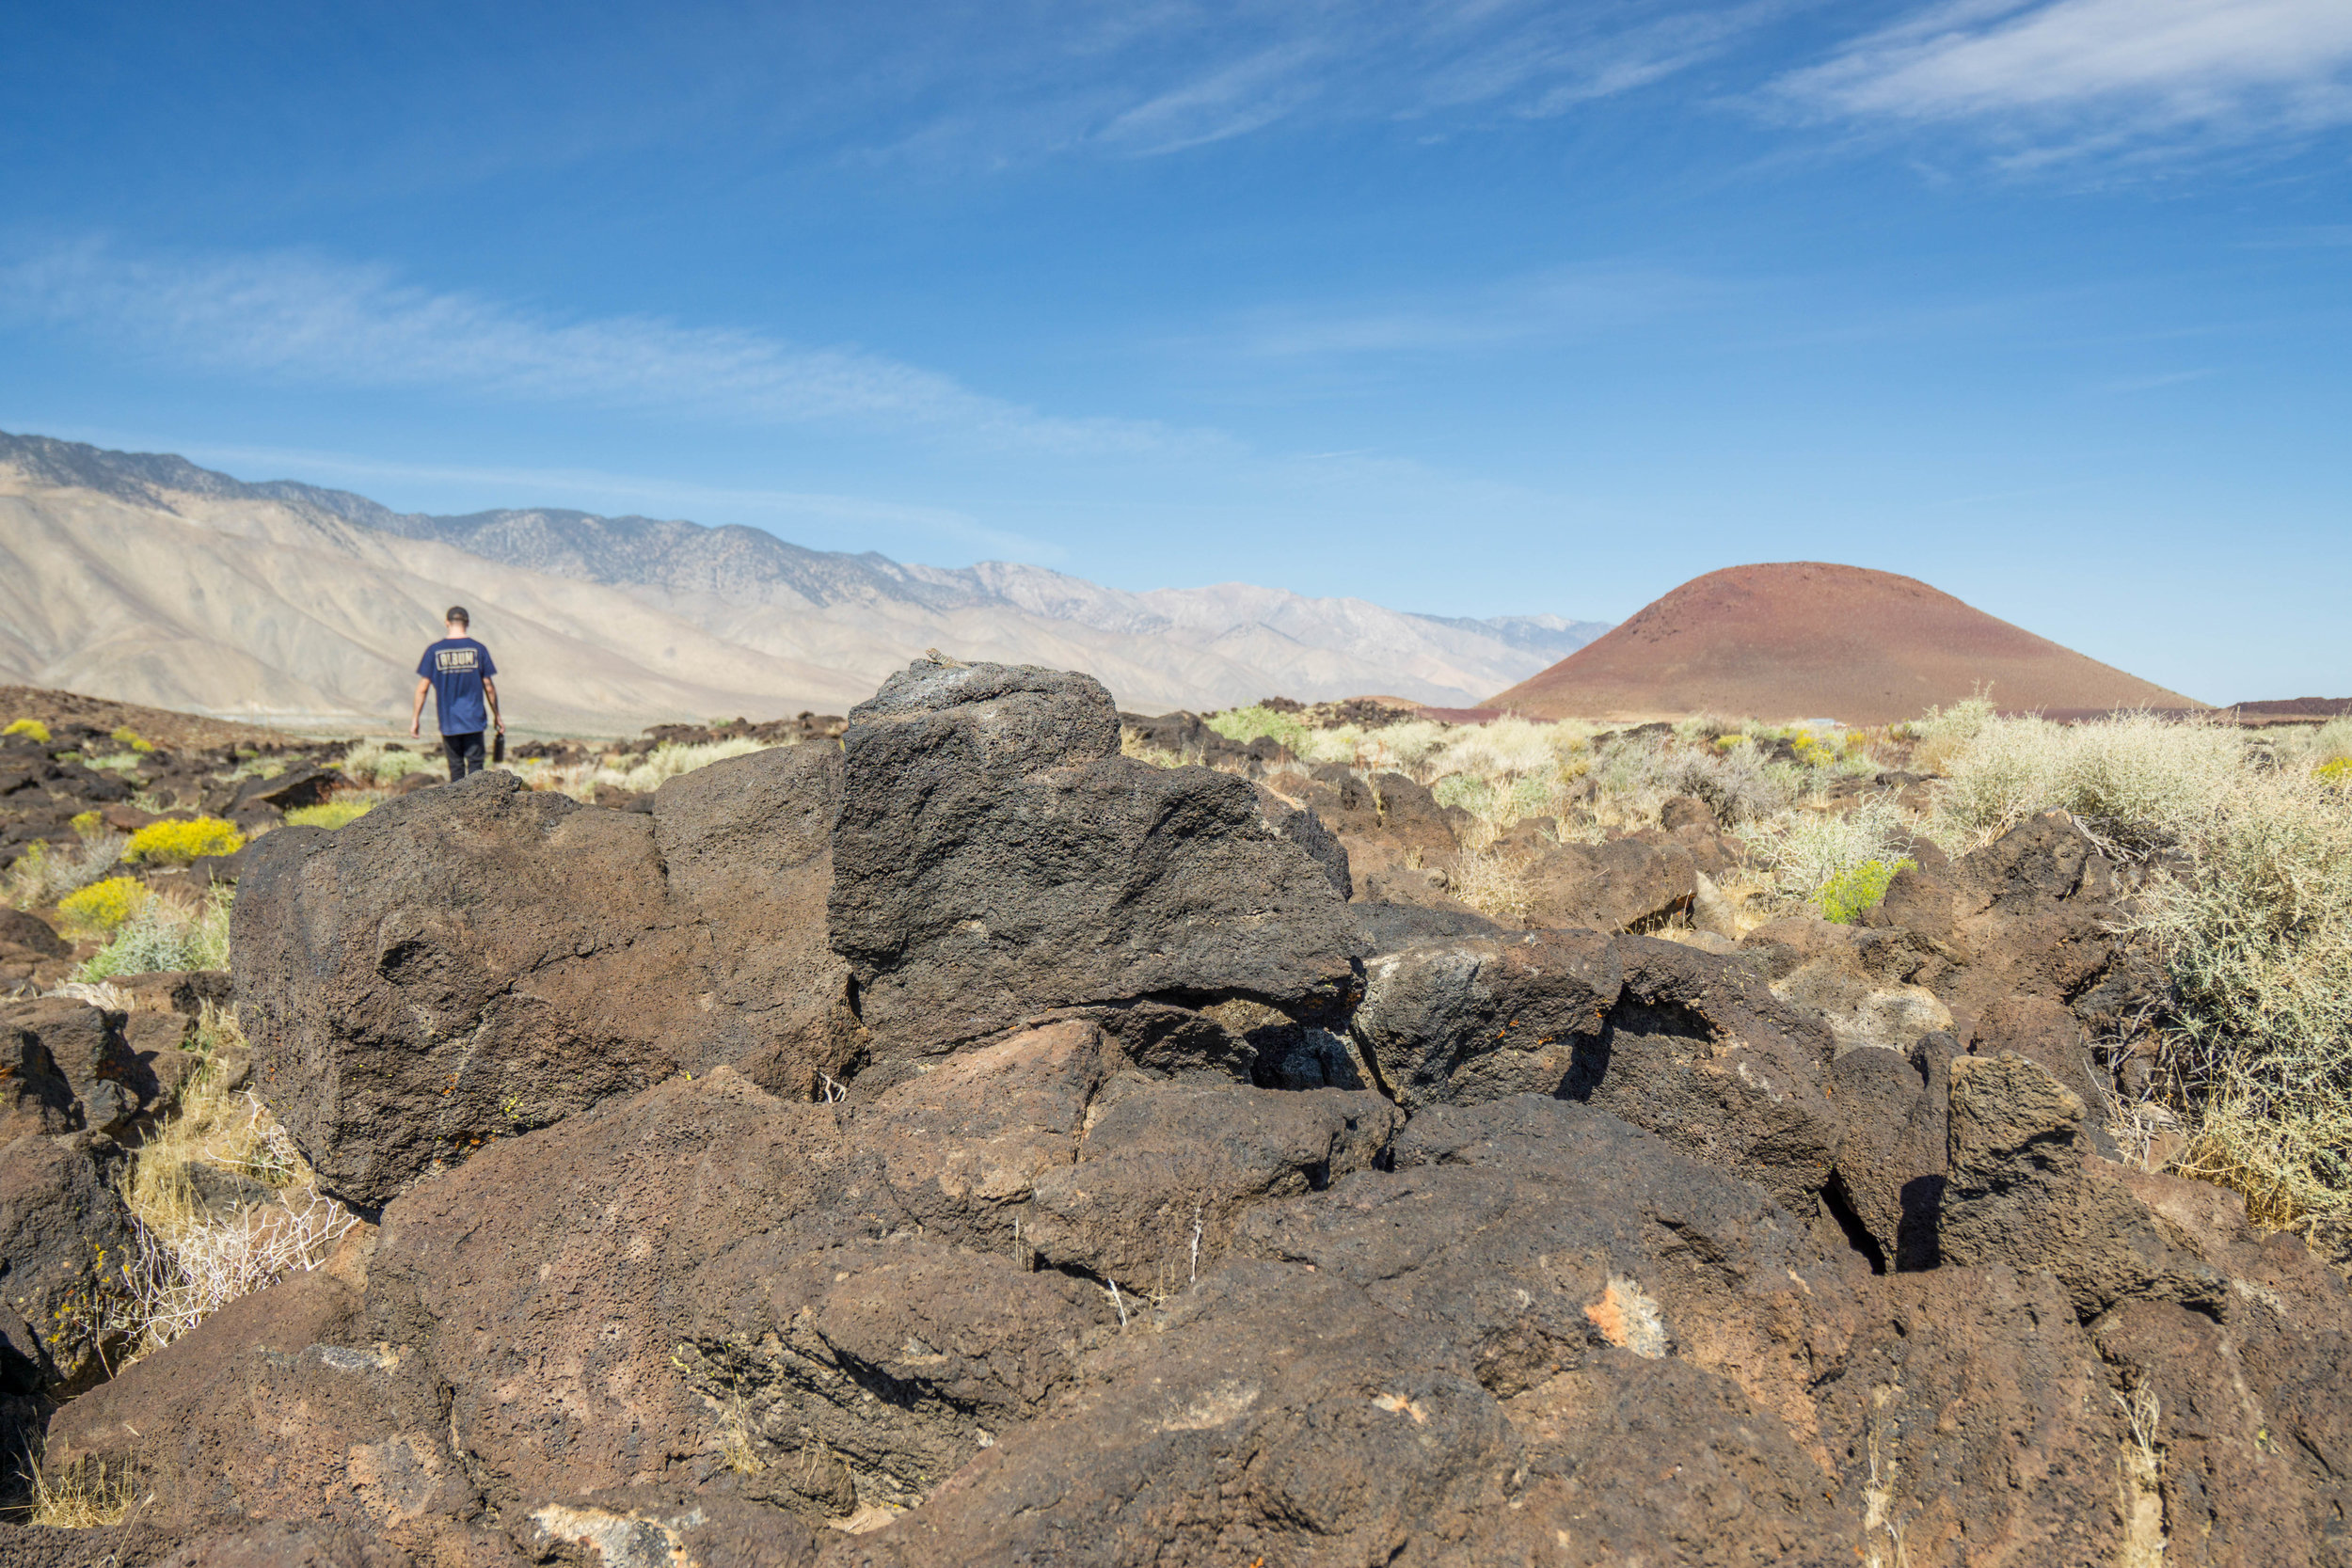 With the scarlet cinder cone looming in the distance, we wander through a field of scattered lava rock back to the car as yet another Misadventure comes to a close.